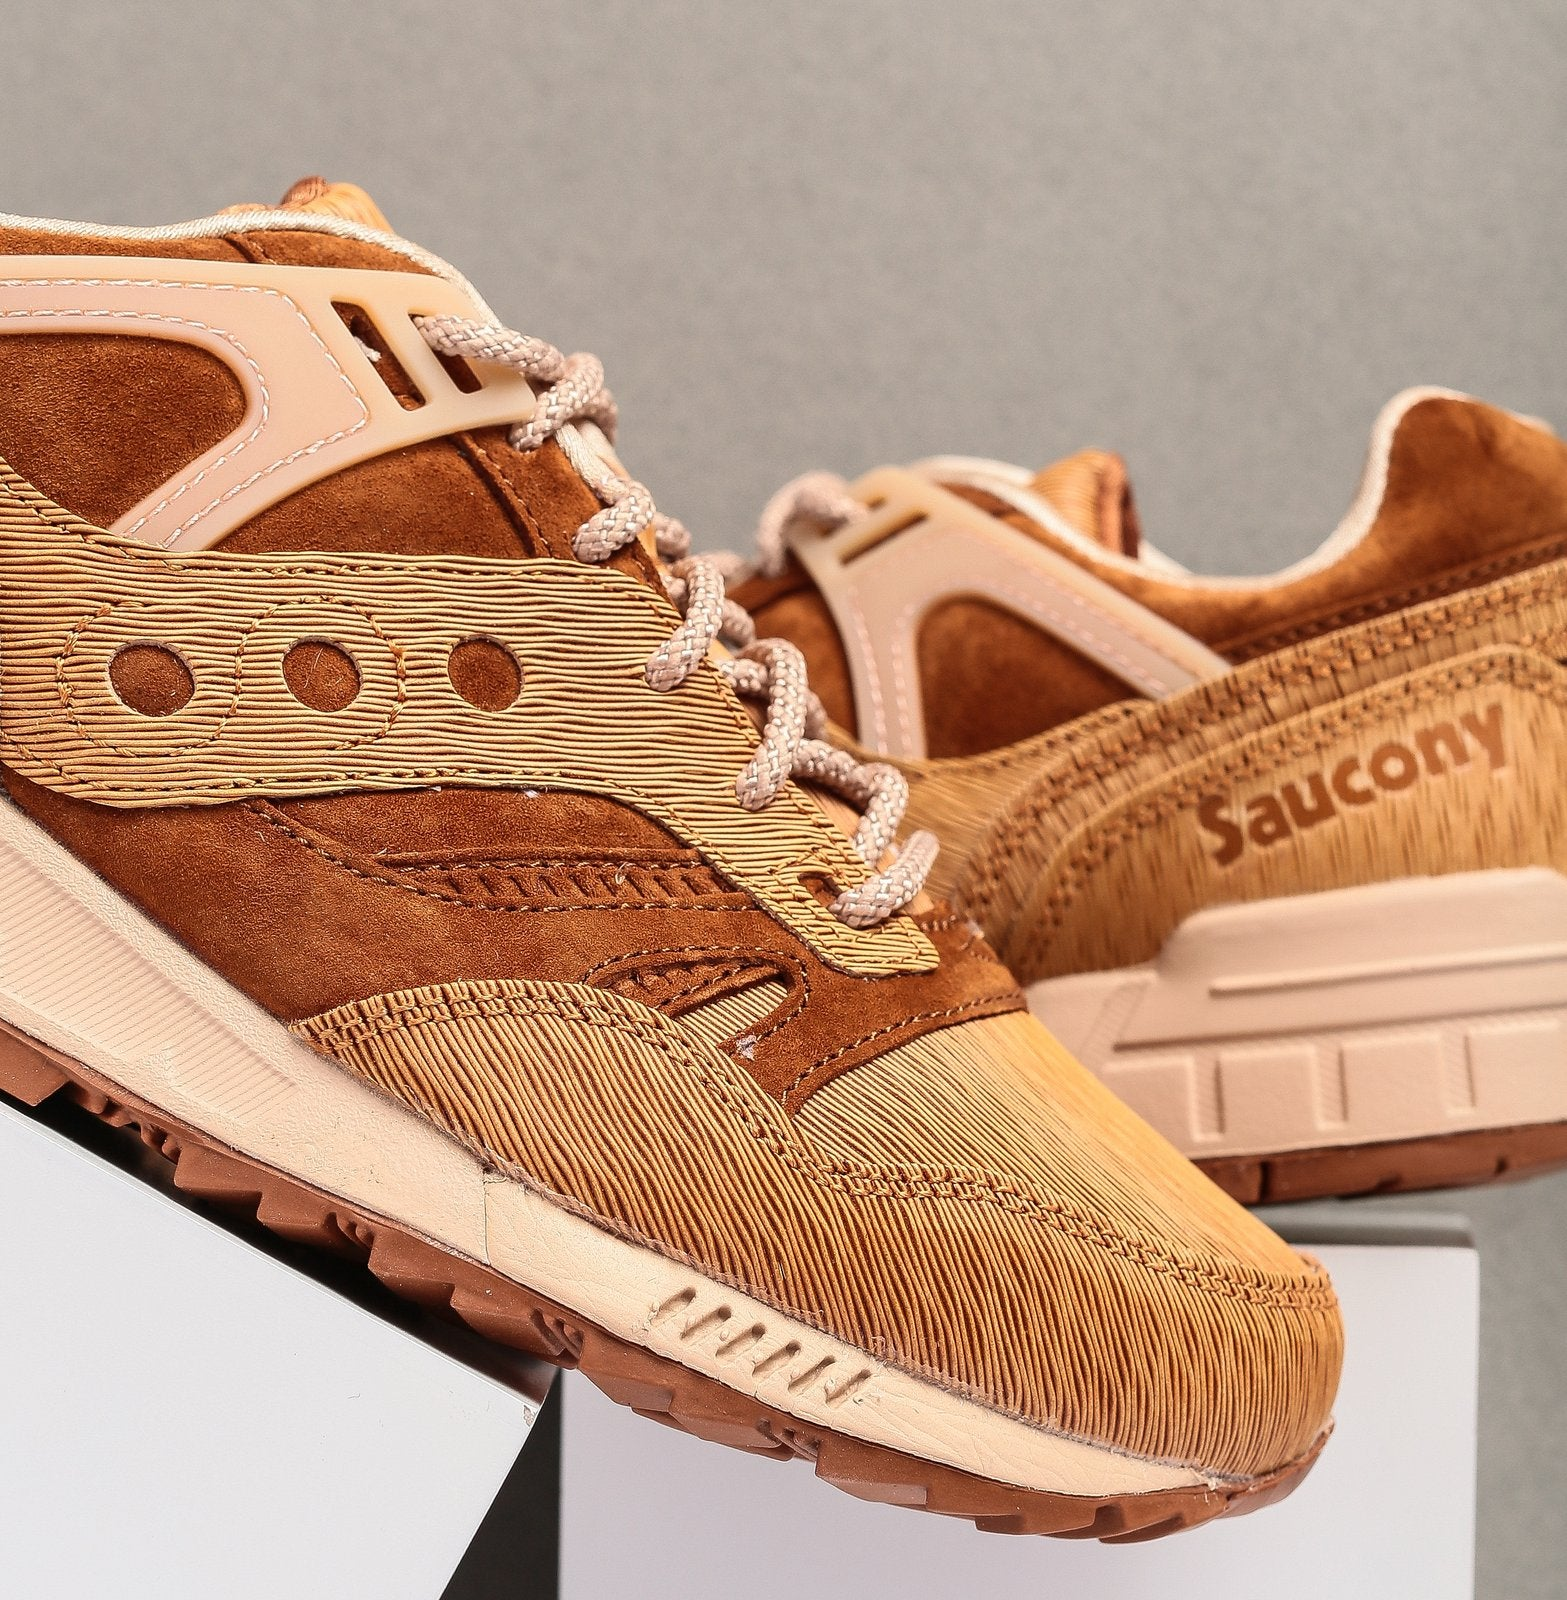 saucony grid sd ht 2017